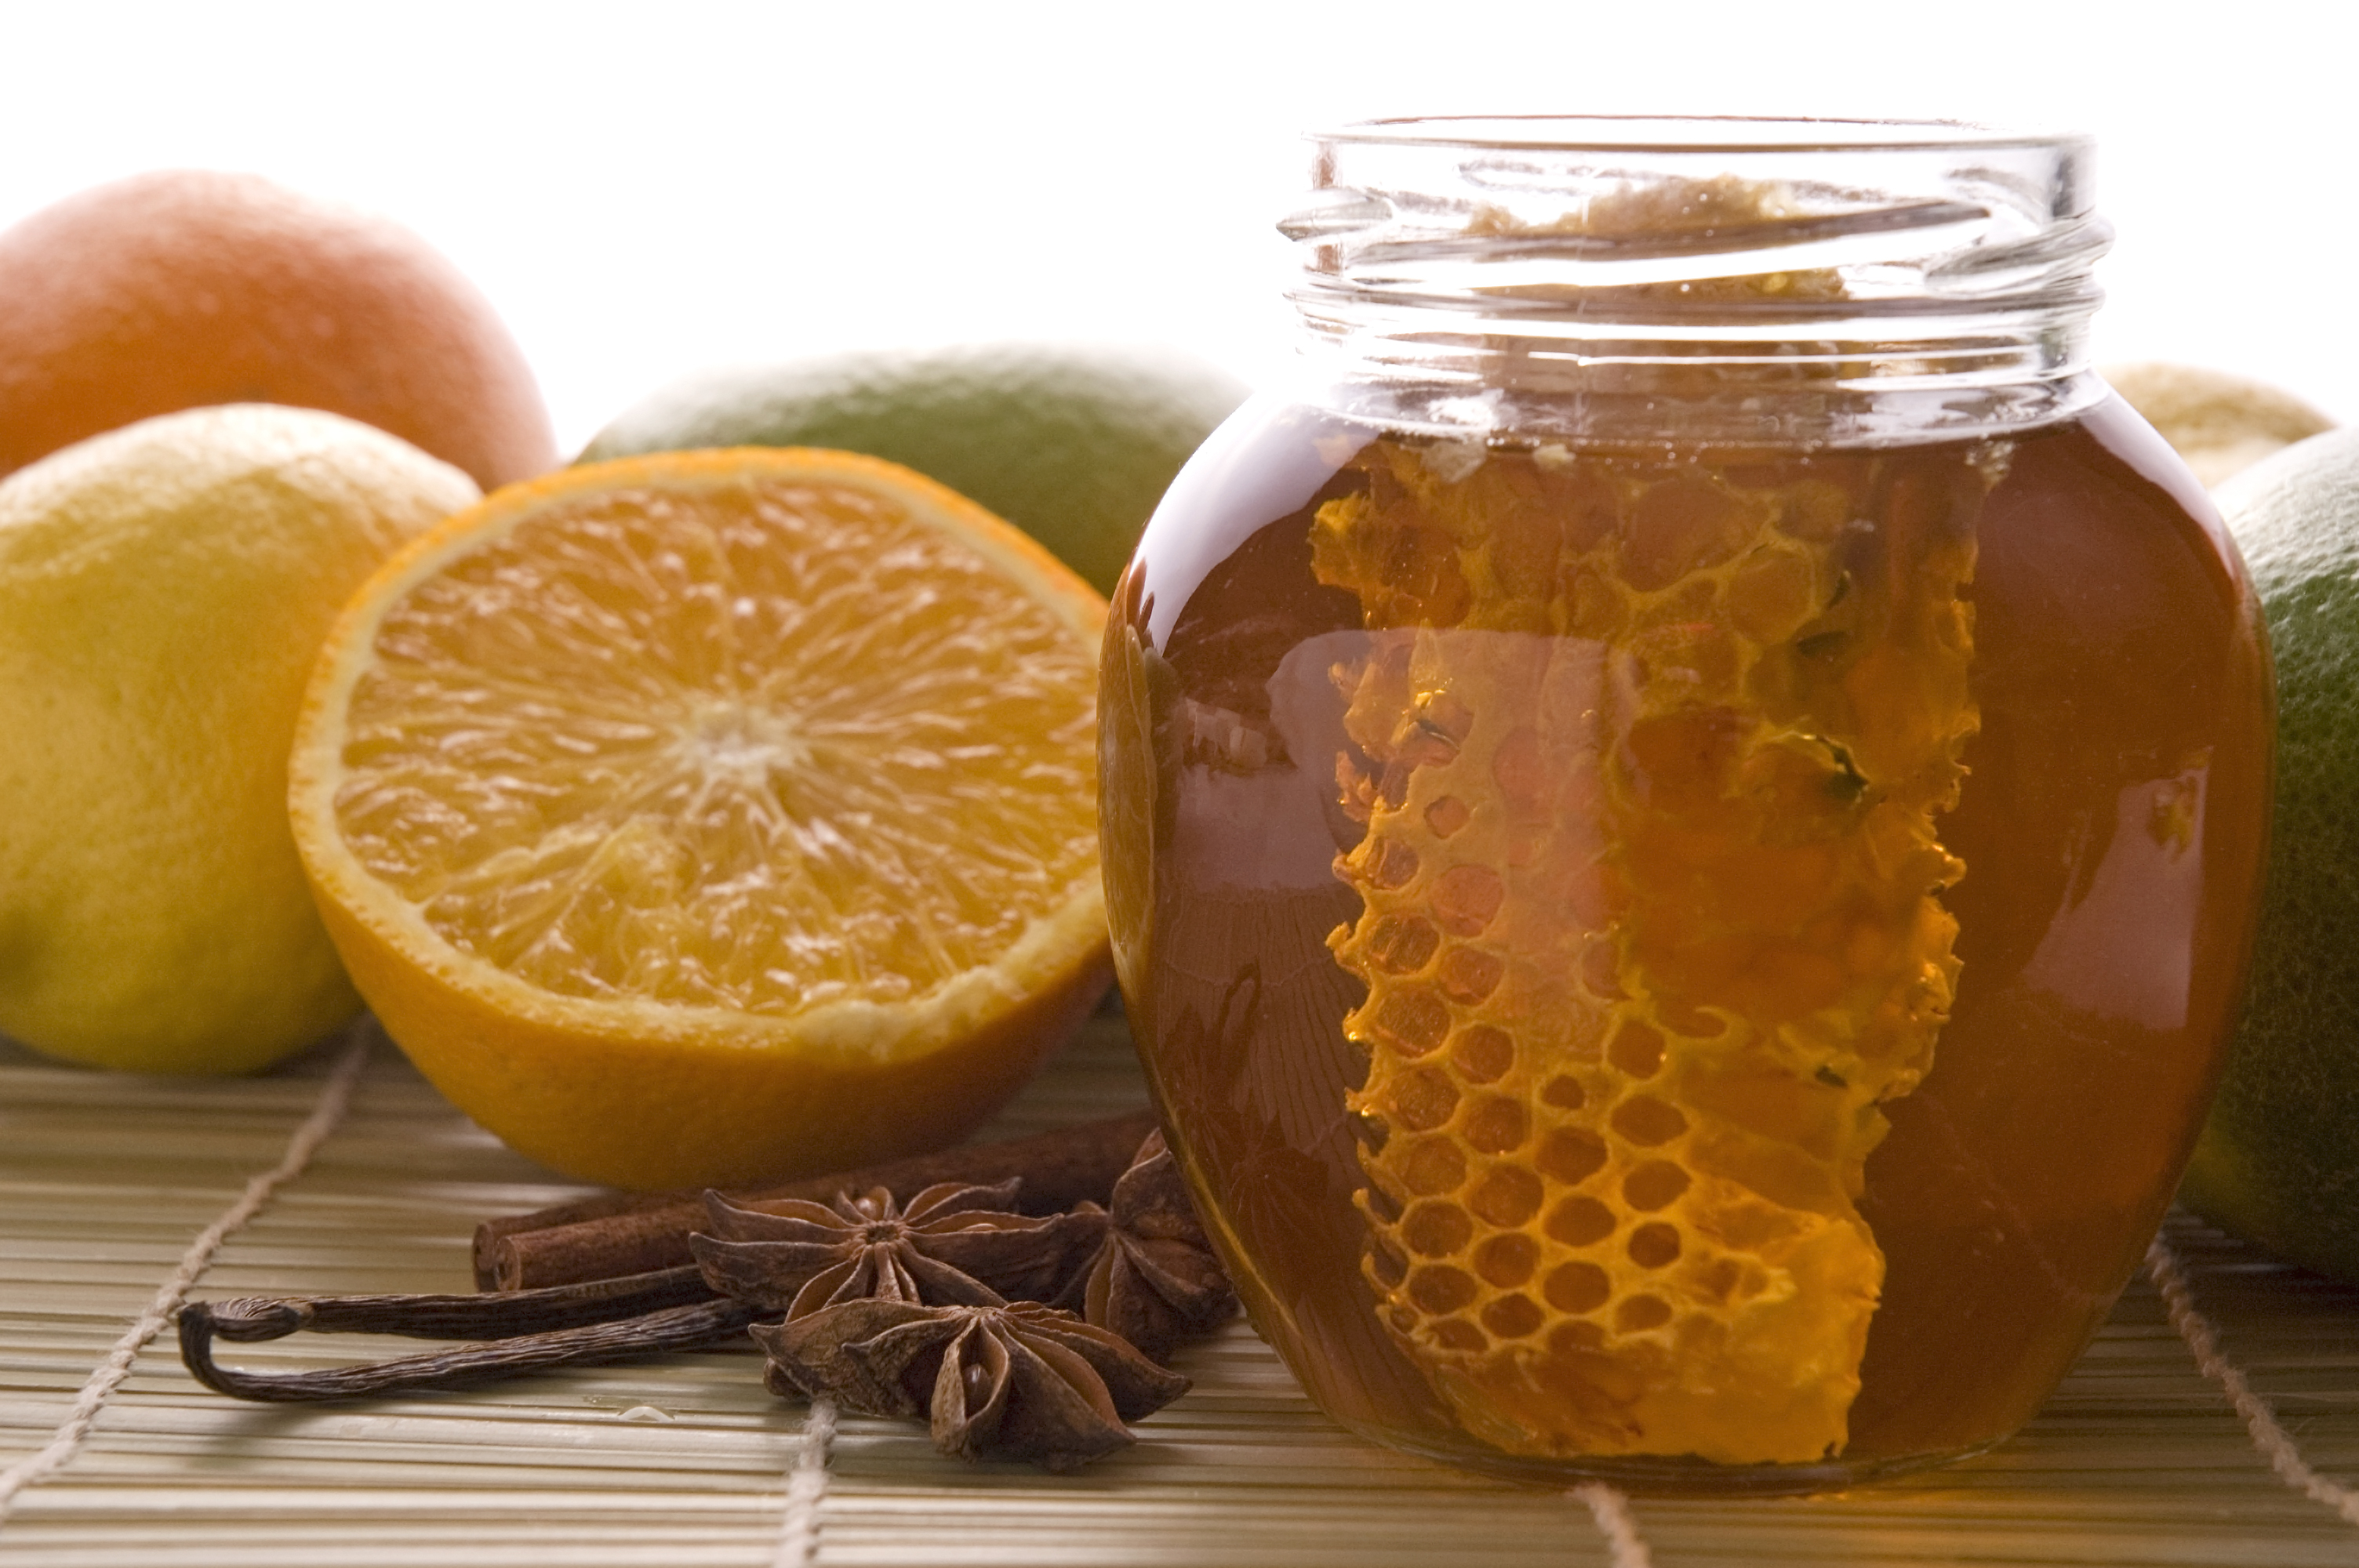 http://www.dreamstime.com/fresh-honey-with-honeycomb-spices-and-fruits-imagefree3715177